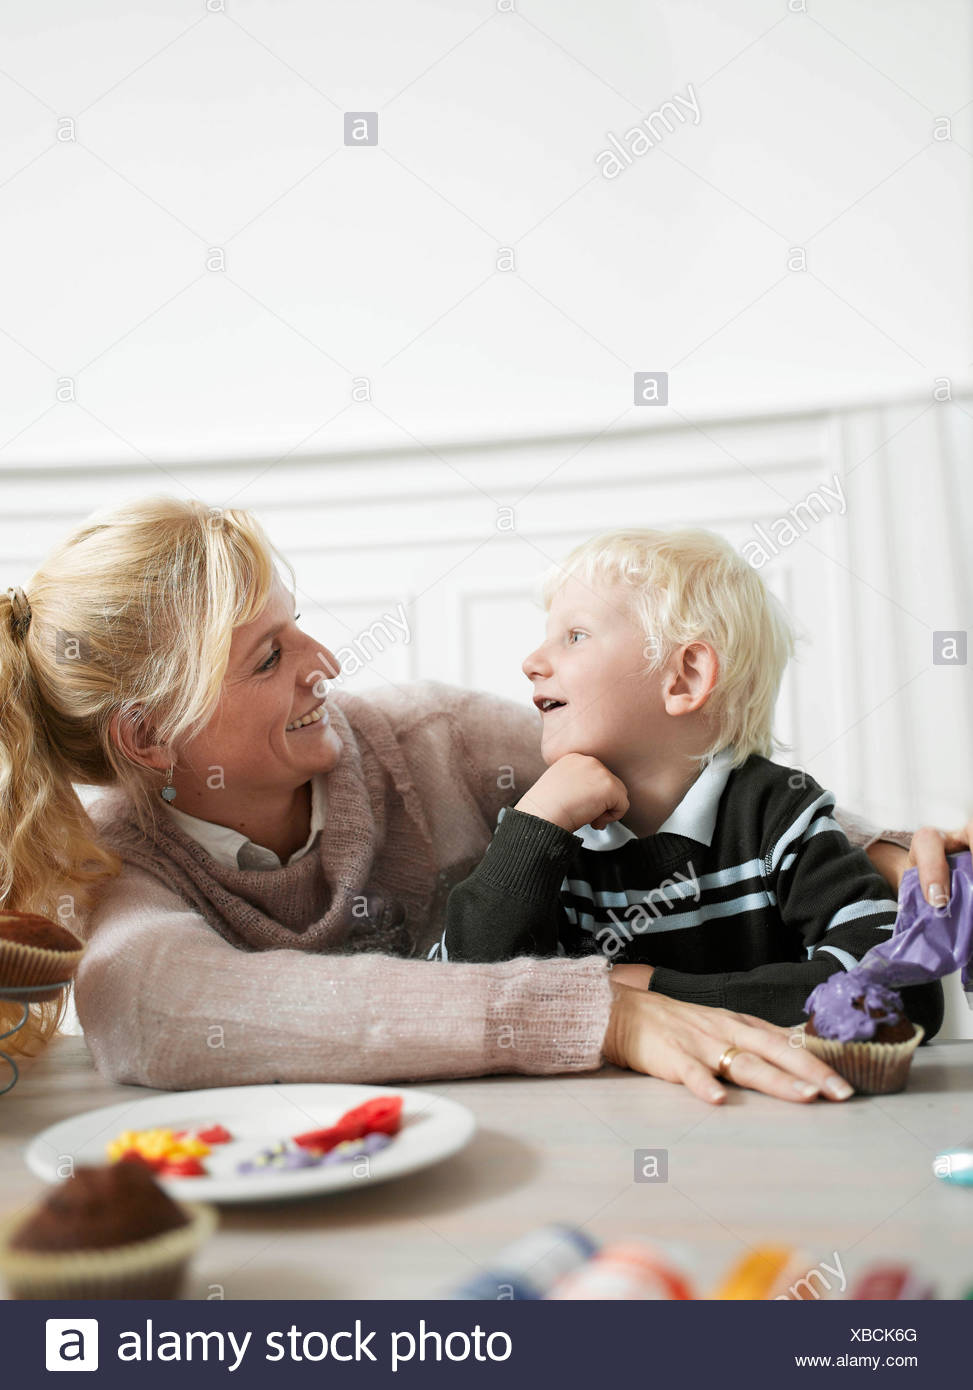 Family making Cupcakes - Stock Image